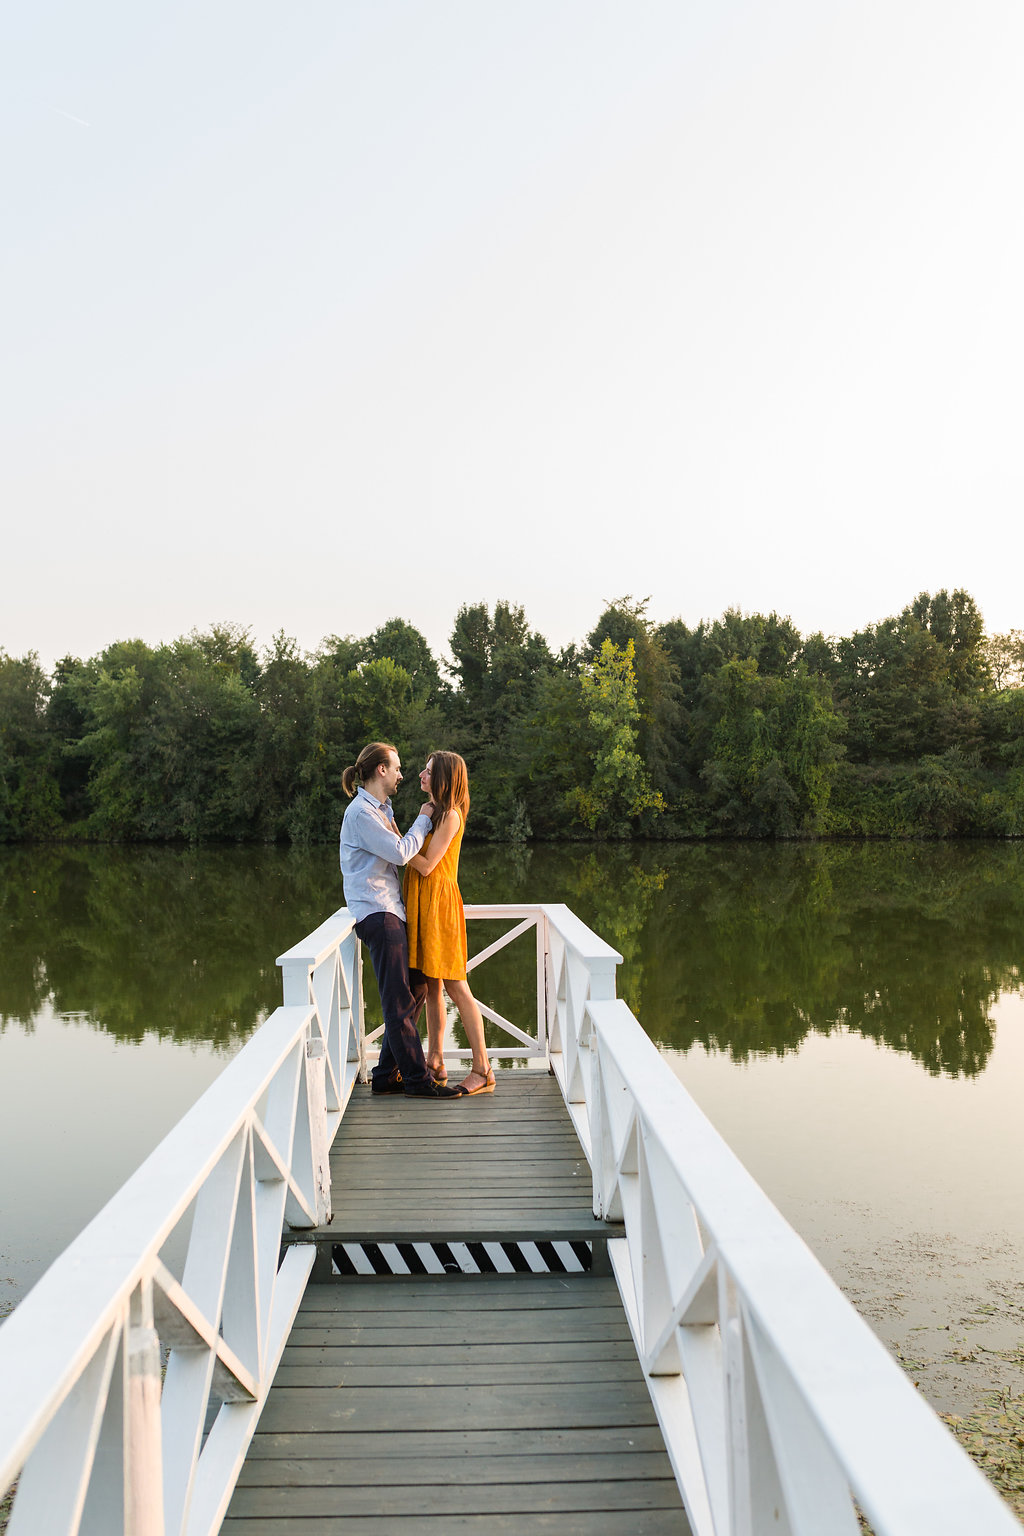 A Lakeside Engagement - The Overwhelmed Bride Wedding Blog